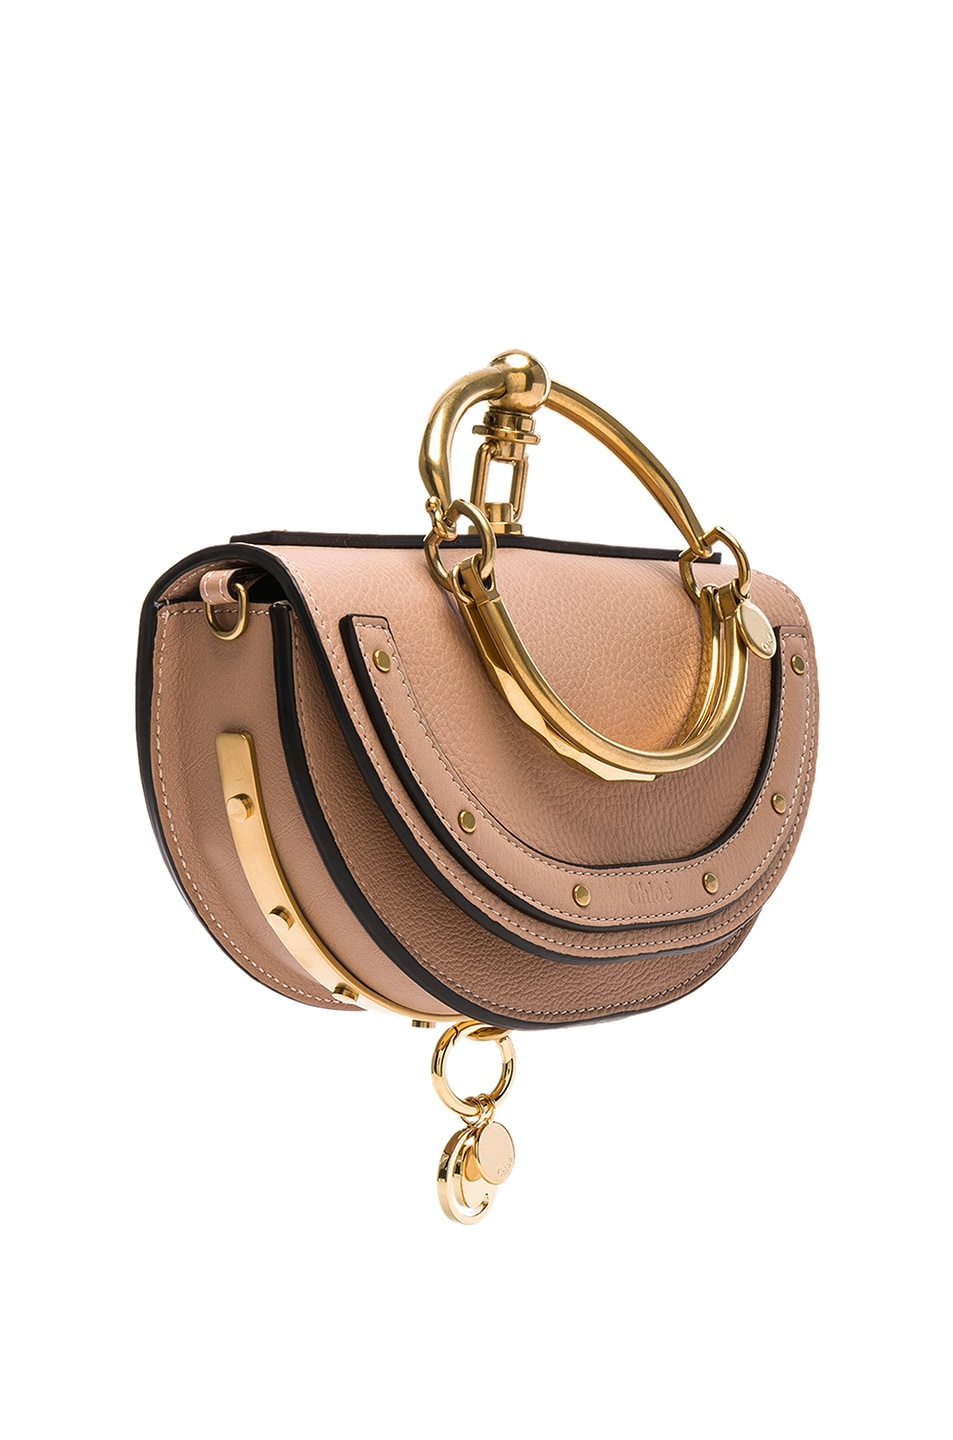 Image 4 of Chloe Small Nile Leather Minaudiere in Biscotti Beige